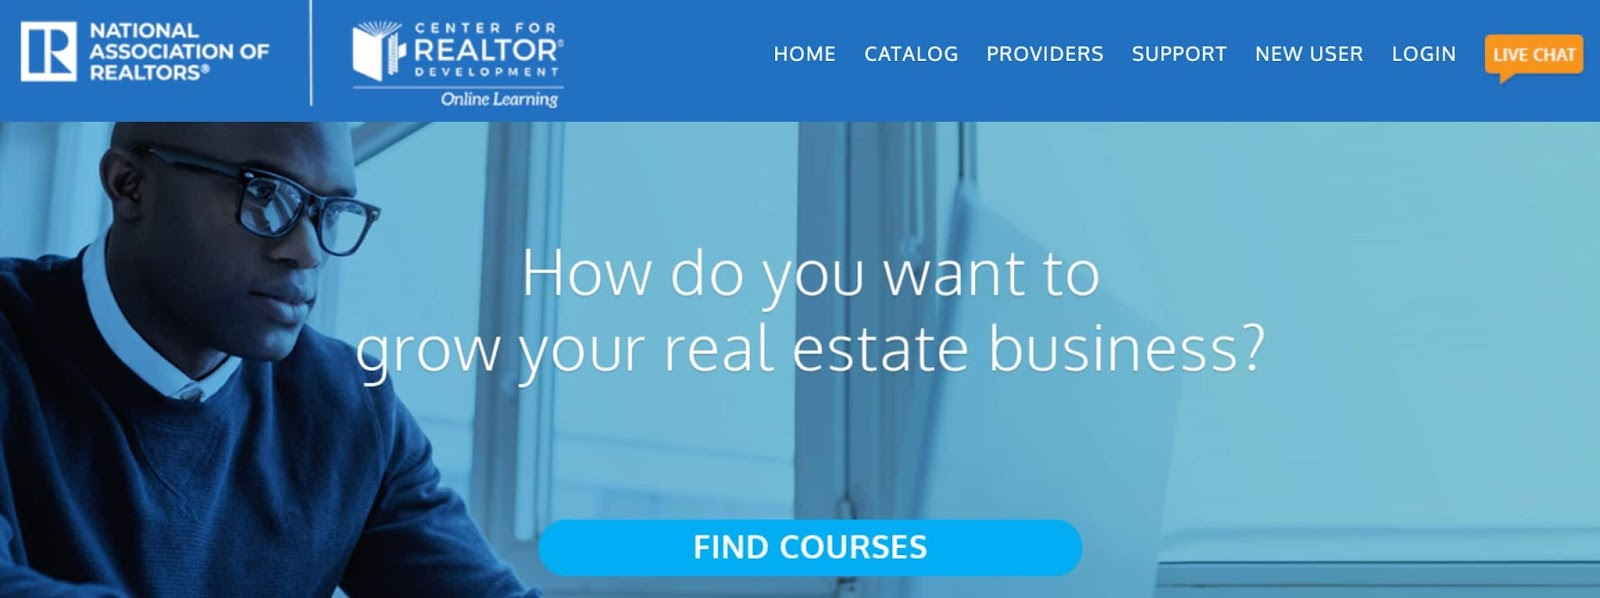 Real Estate Courses The National Association of Realtors